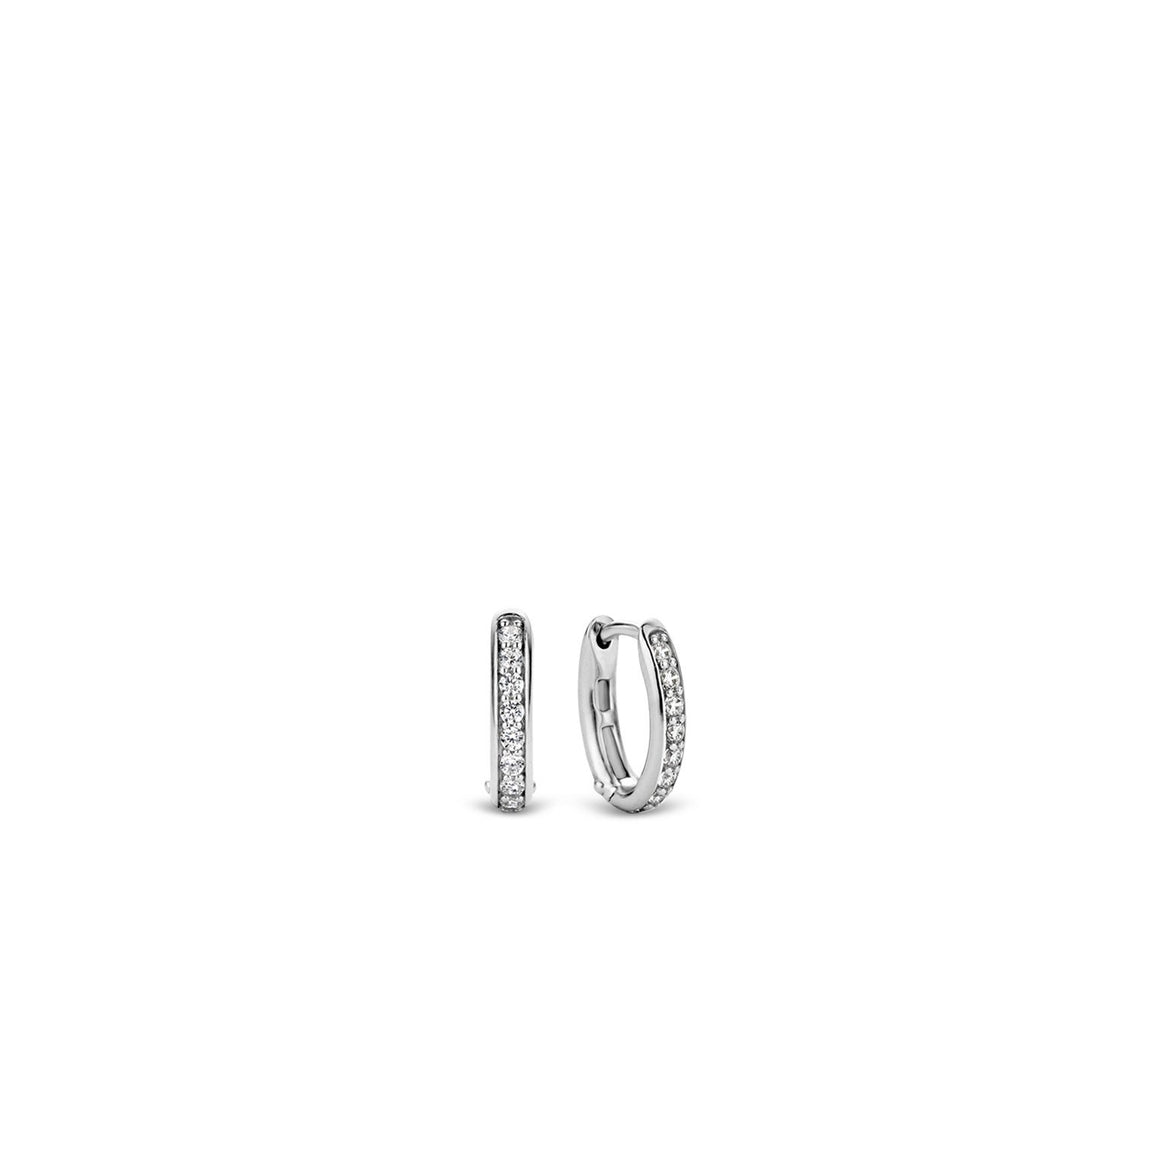 TI SENTO - Milano Earrings 7759ZI